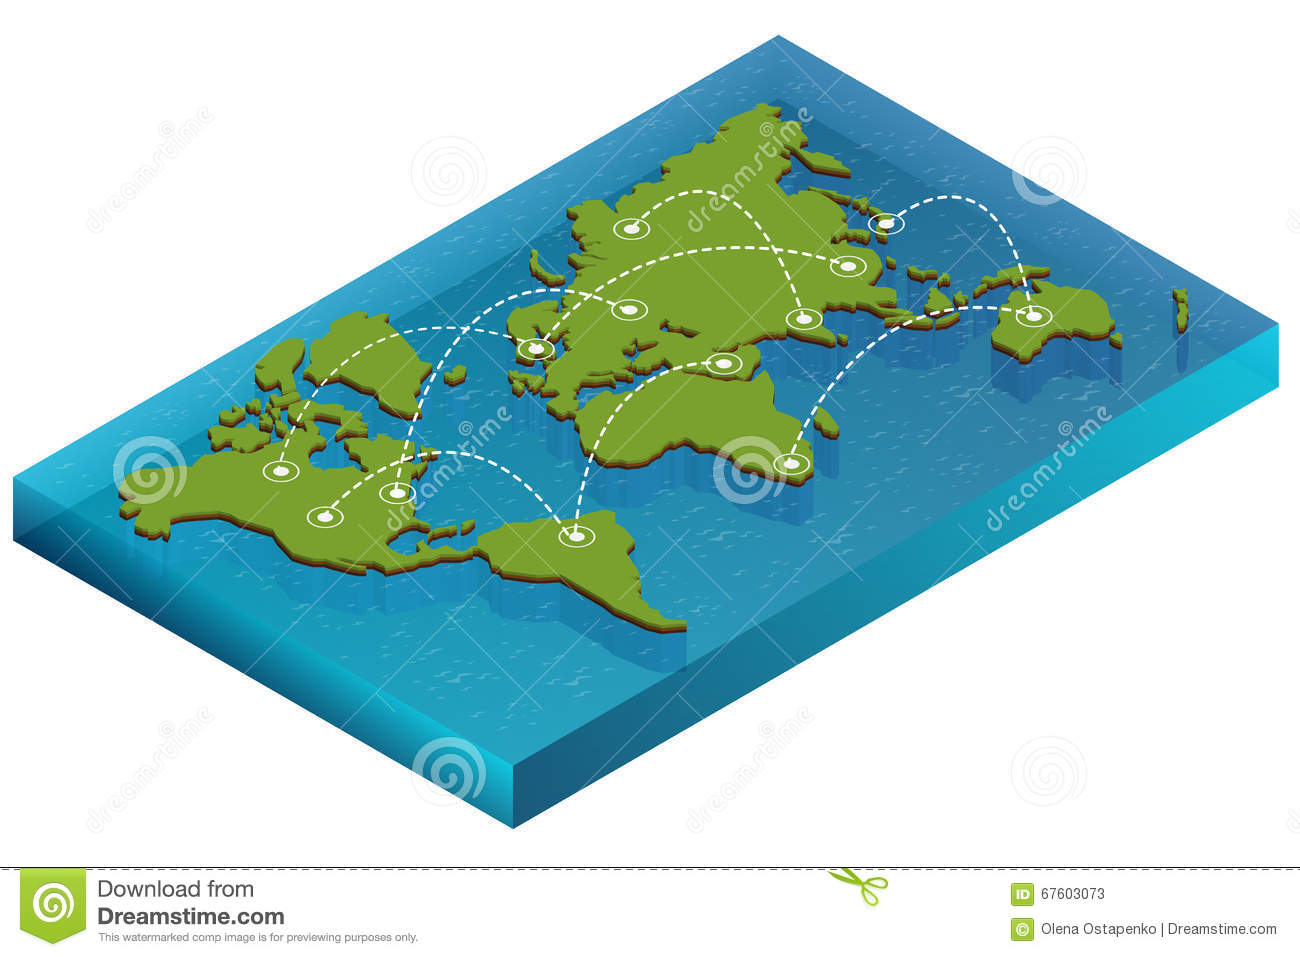 Map world isometric concept 3d flat illustration of map world download map world isometric concept 3d flat illustration of map world vector world map gumiabroncs Images